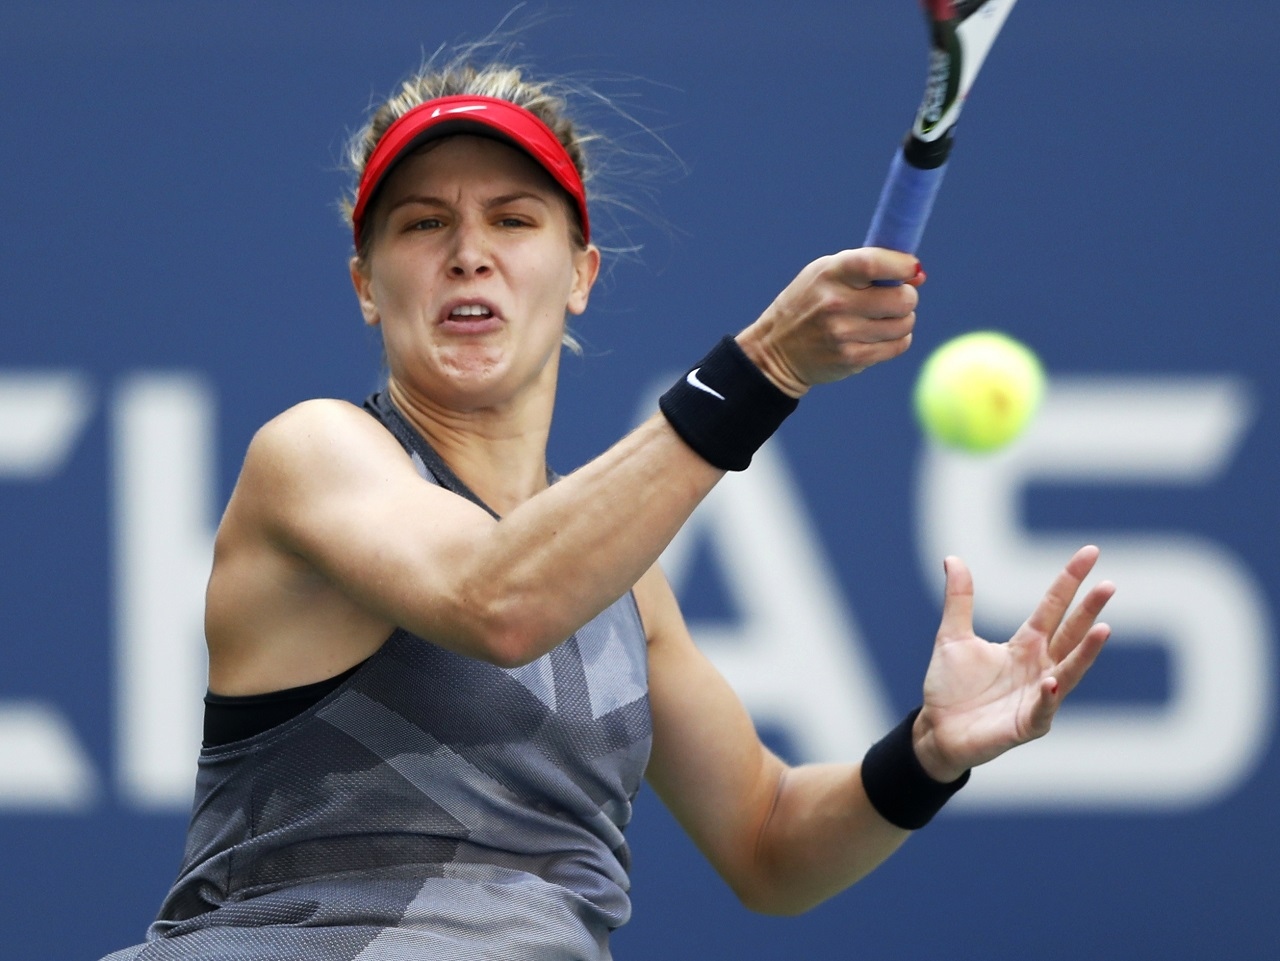 Eugenie Bouchard, of Canada, returns a shot from Evgeniya Rodina, of Russia, during the first round of the U.S. Open tennis tournament, Wednesday, Aug. 30, 2017, in New York.